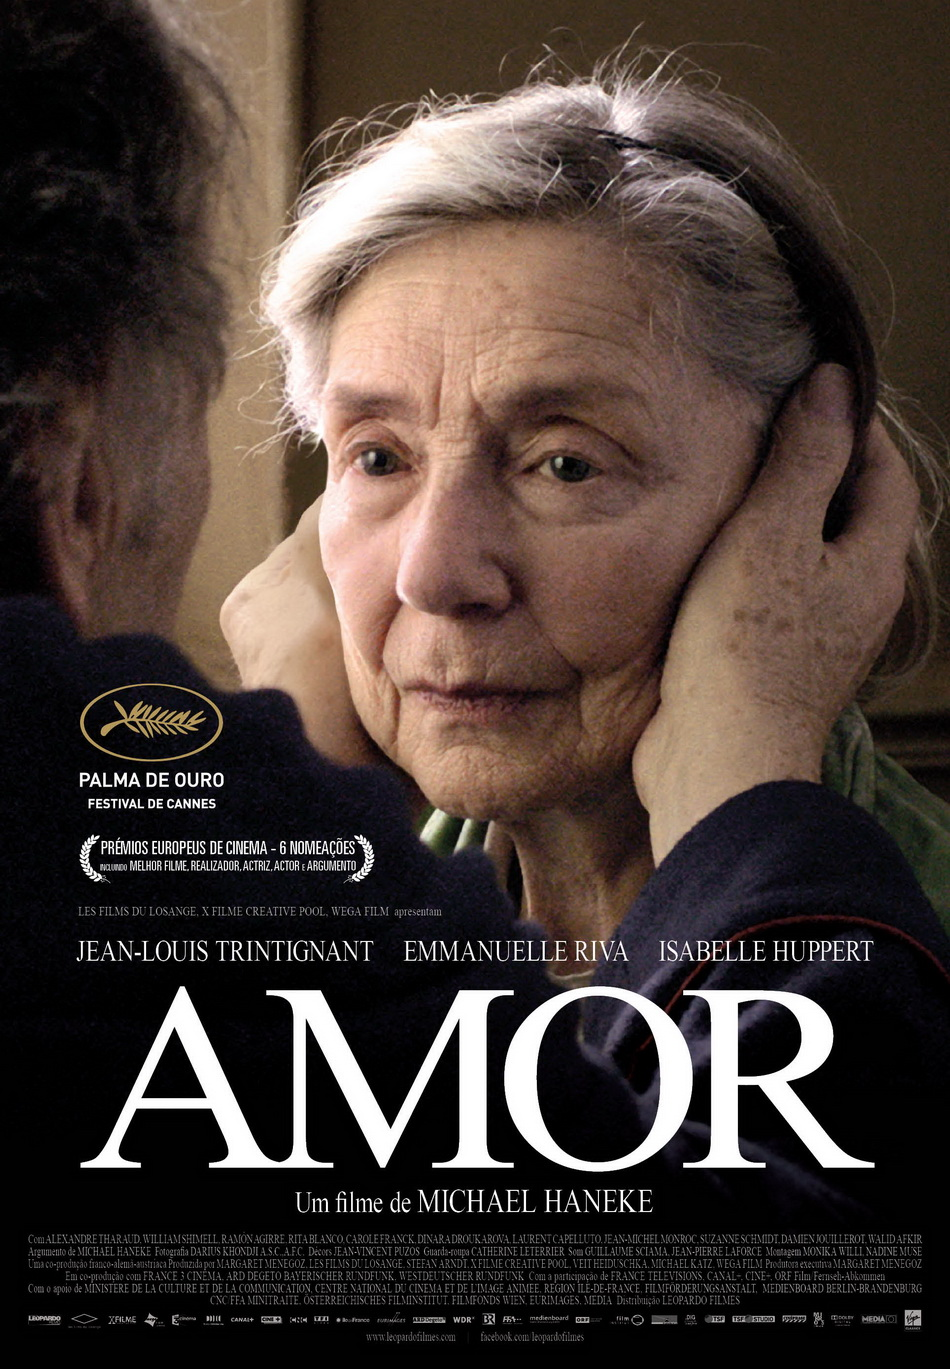 http://obviousmag.org/inquietudes/2015/05/28/Amour-Poster.jpg